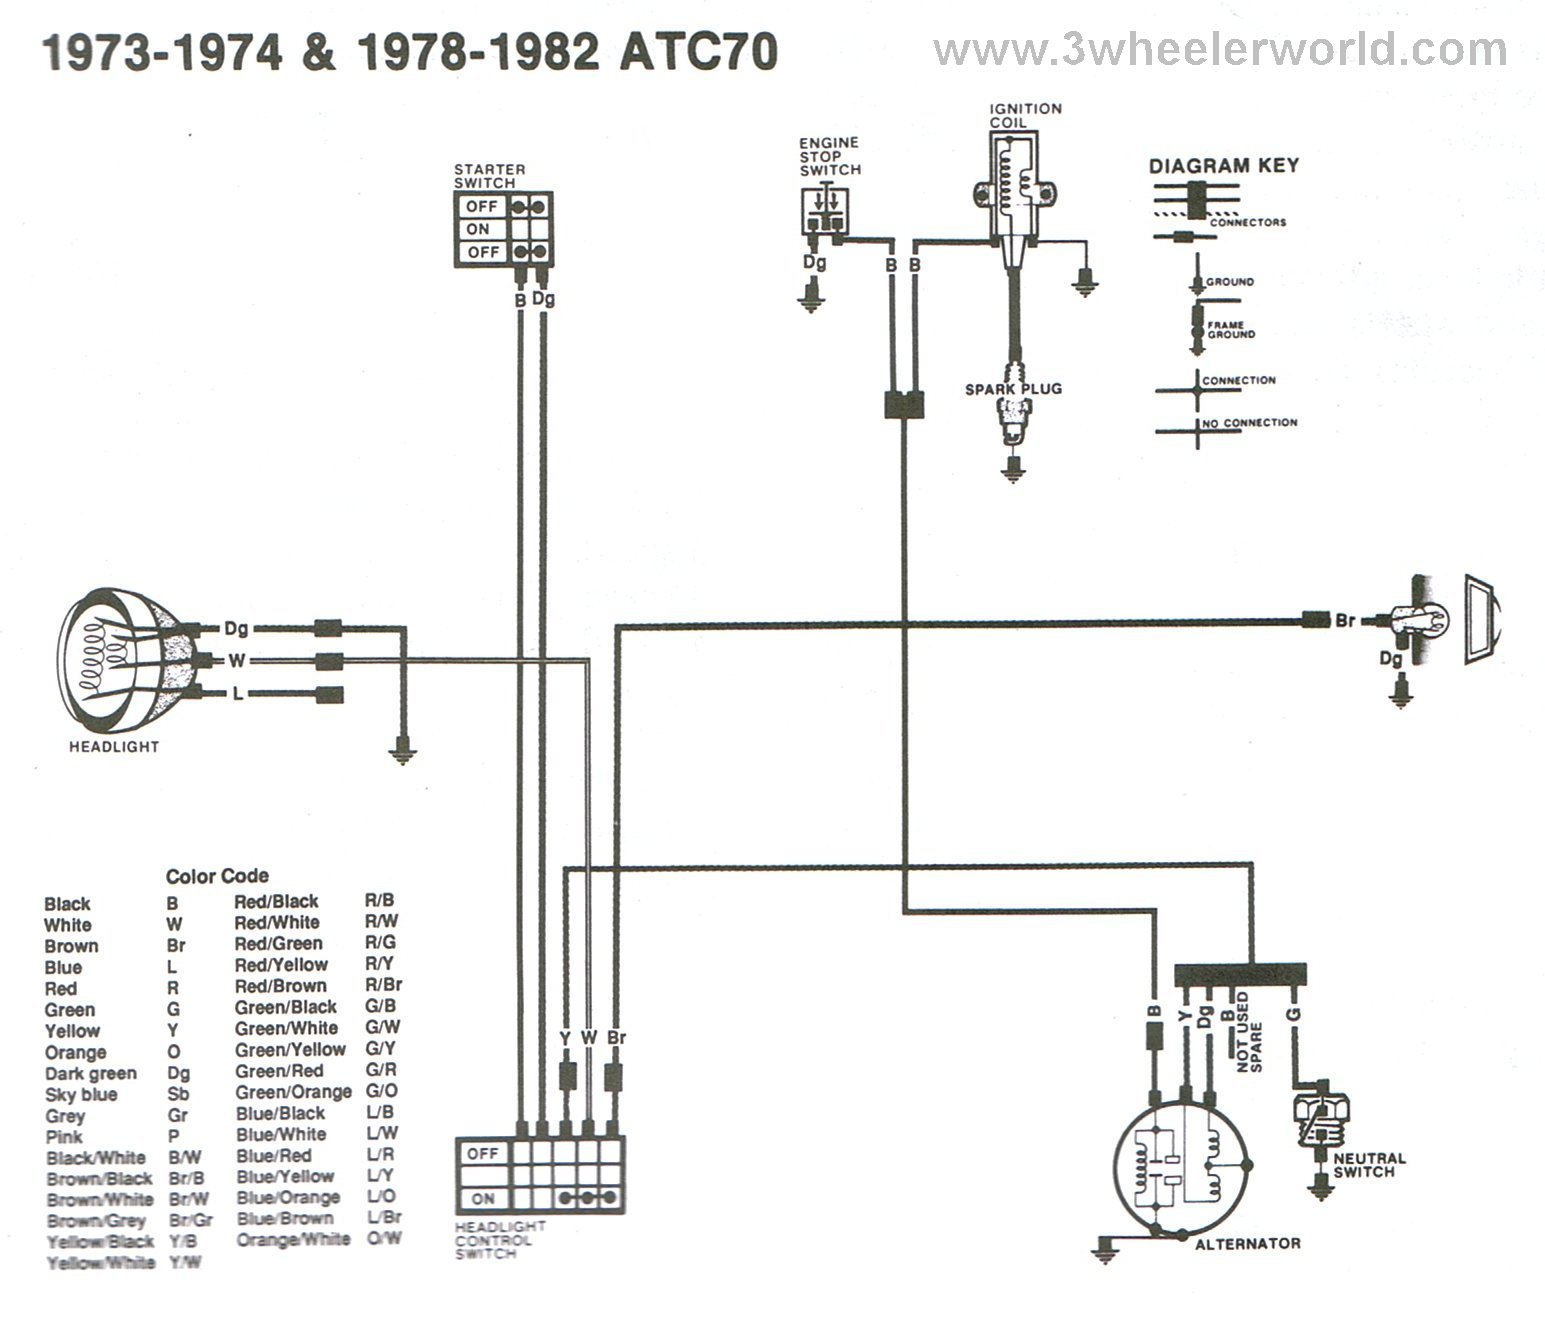 3WHeeLeR WoRLD - Honda ATC wiring diagrams on honda 185s wiring diagram, honda 200m wiring diagram, honda 250r wiring diagram, honda 200s wiring diagram,